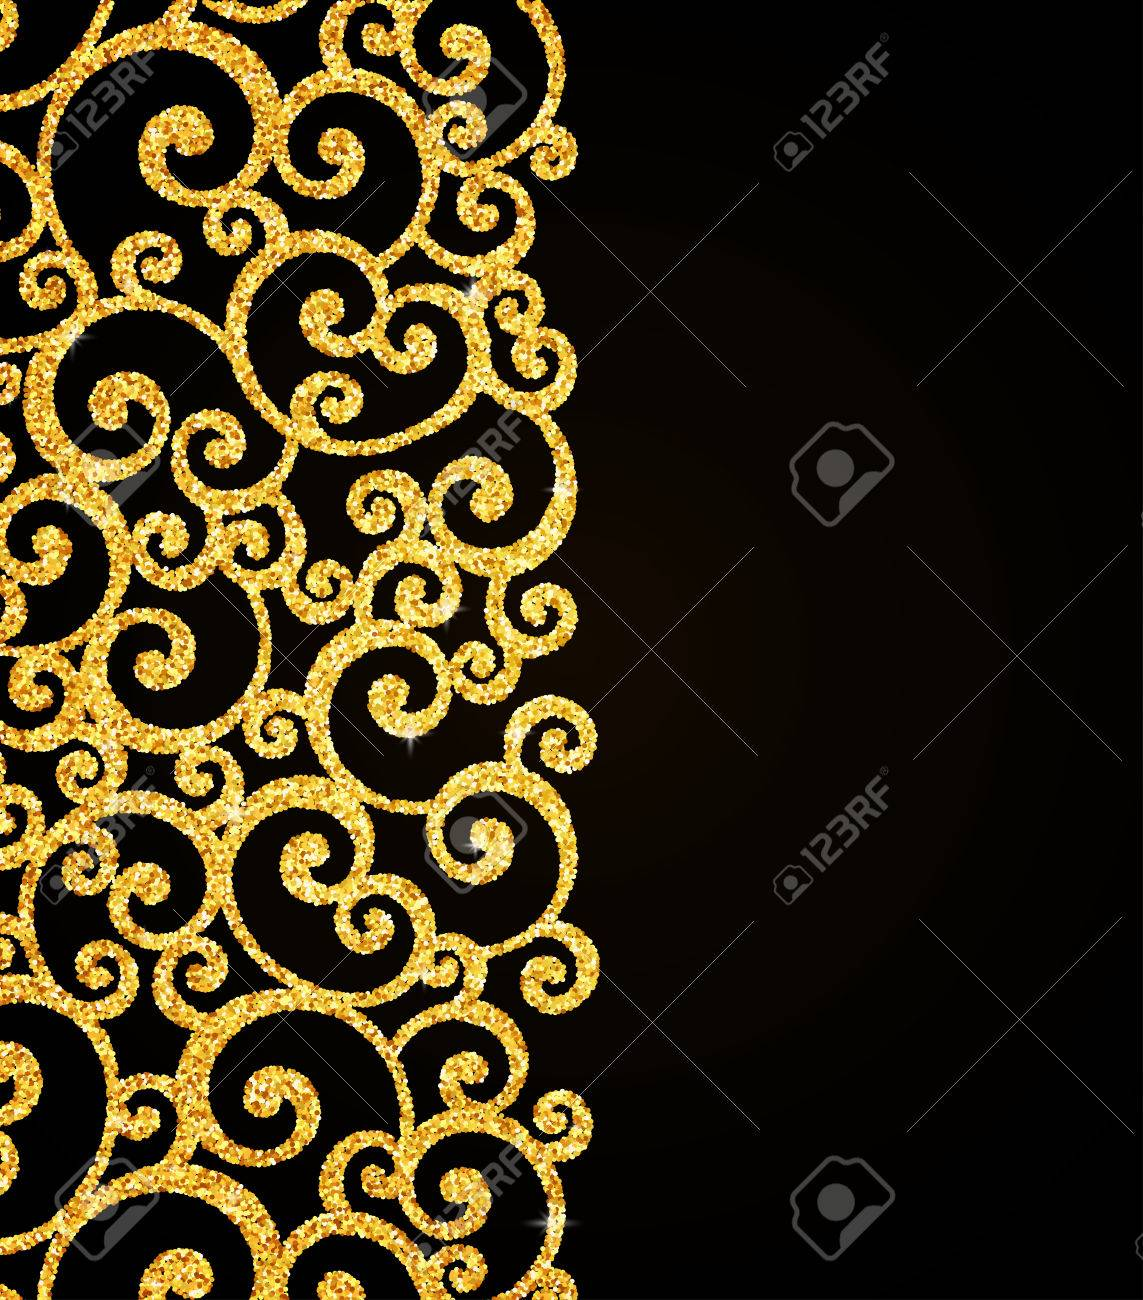 Vector gold glitter floral curl invitation card with swirl damask vector gold glitter floral curl invitation card with swirl damask pattern on black background stock vector stopboris Images